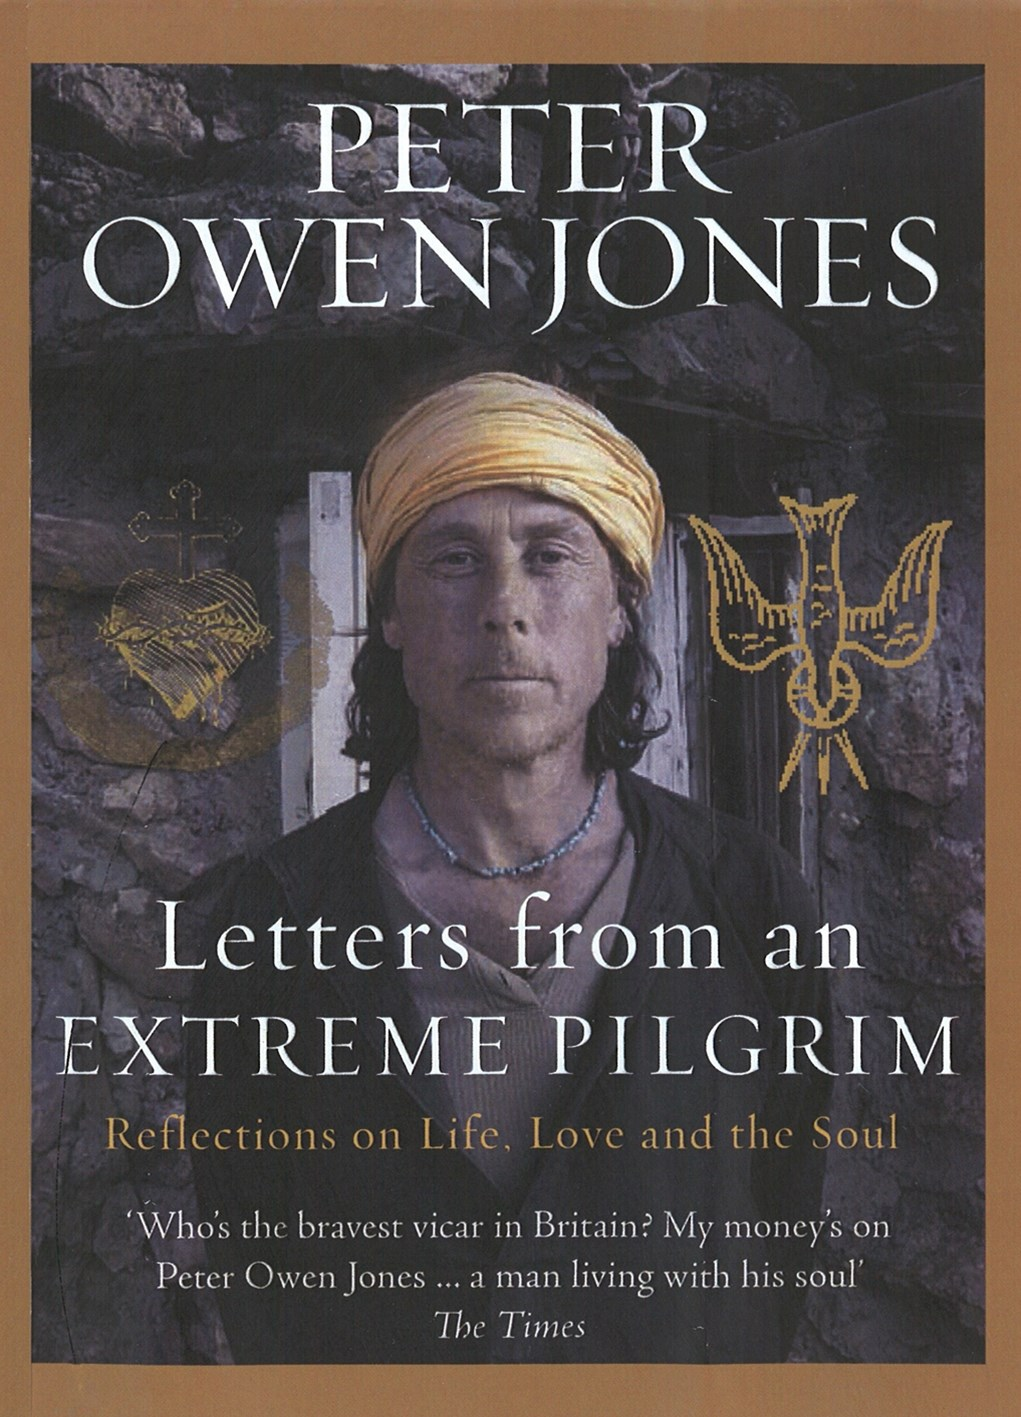 Letters from an Extreme Pilgrim